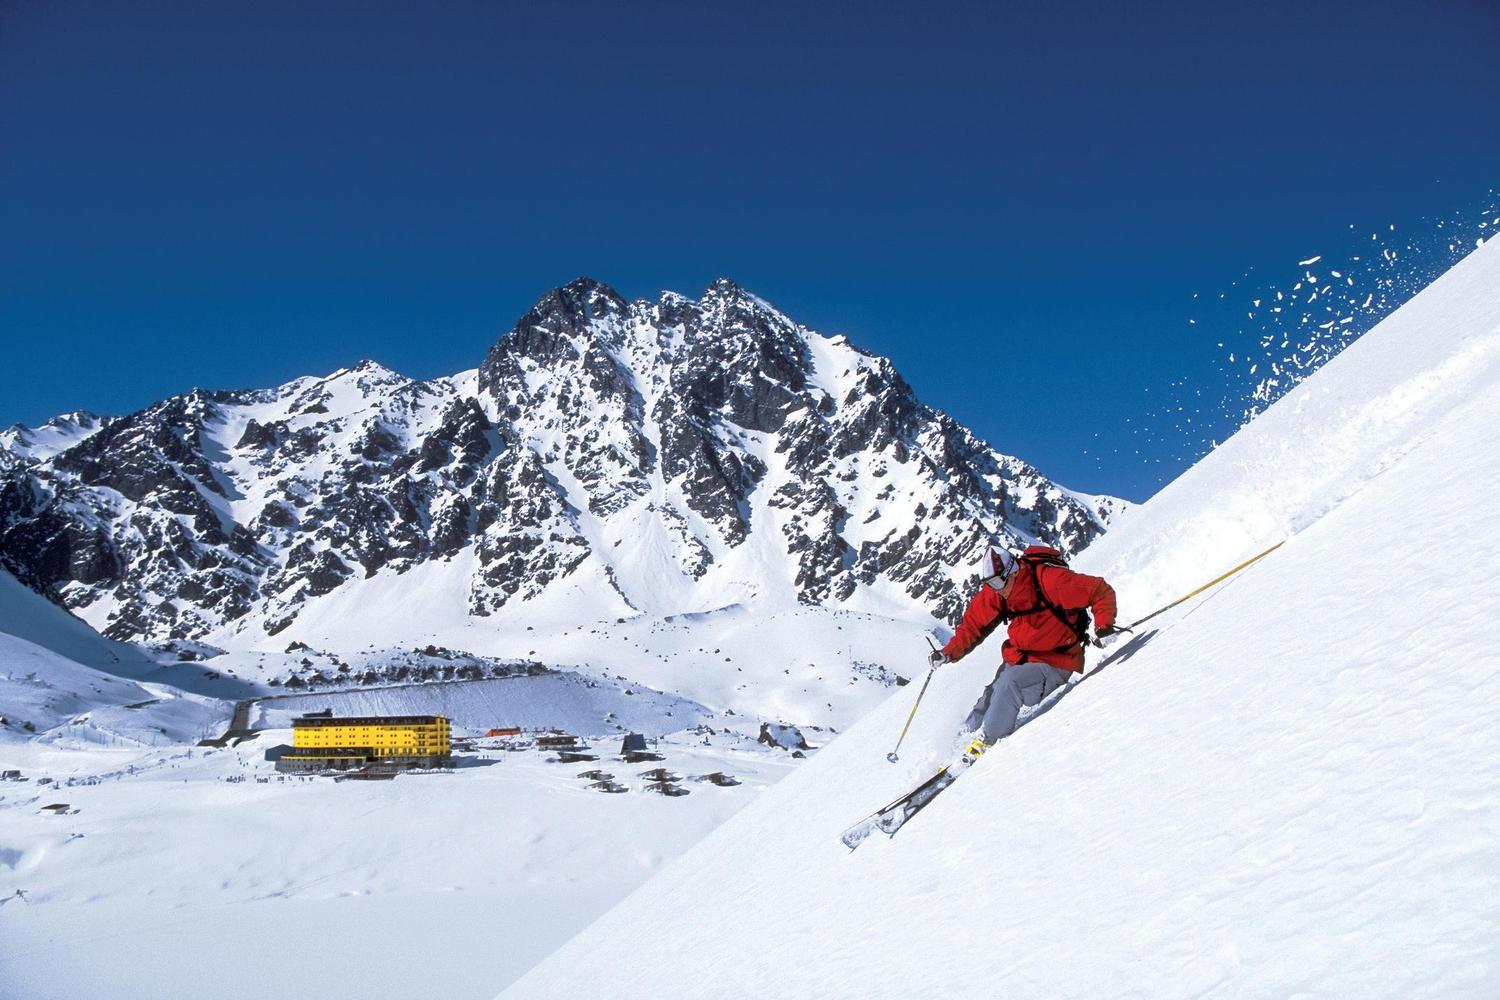 Skiing the steep sides of the Portilo resort